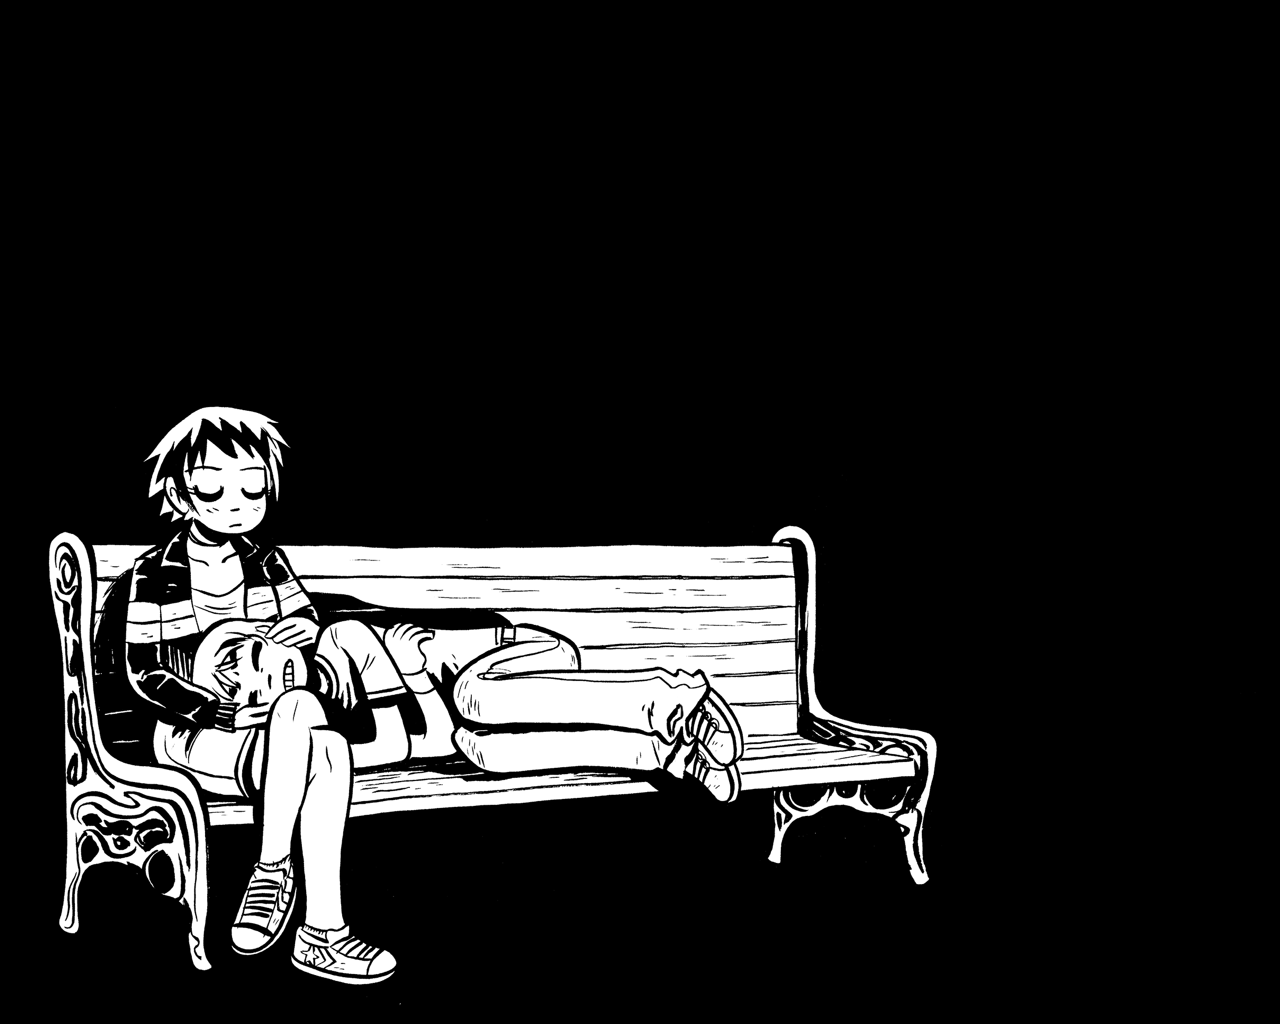 1280x1024 - Scott Pilgrim iPhone 21